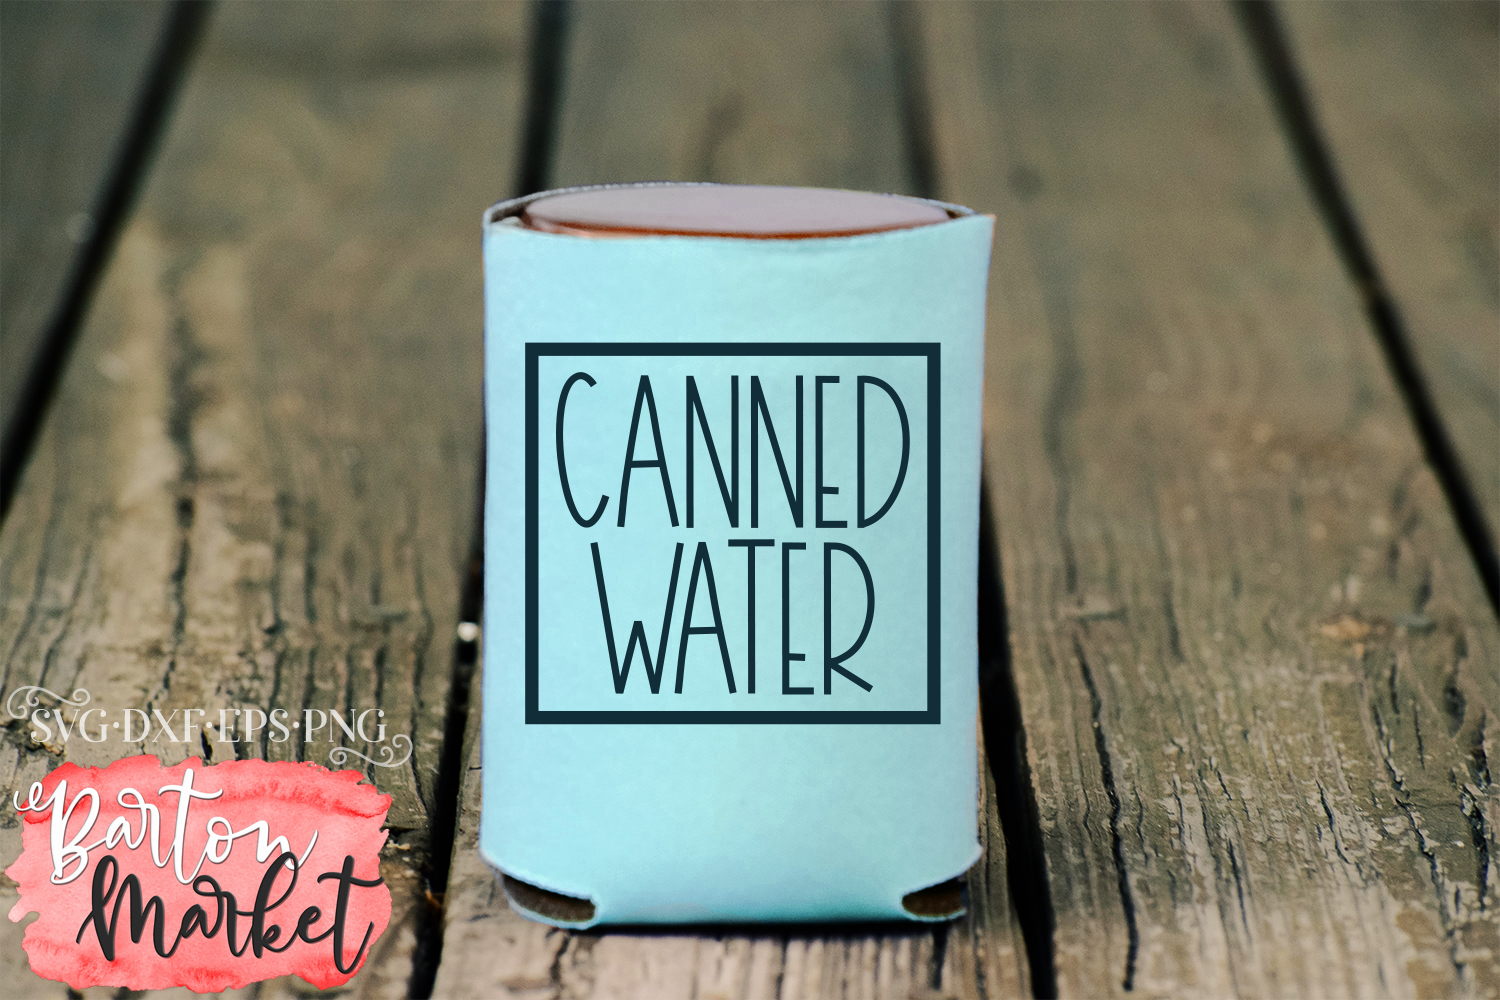 Canned Water SVG DXF EPS PNG example image 3